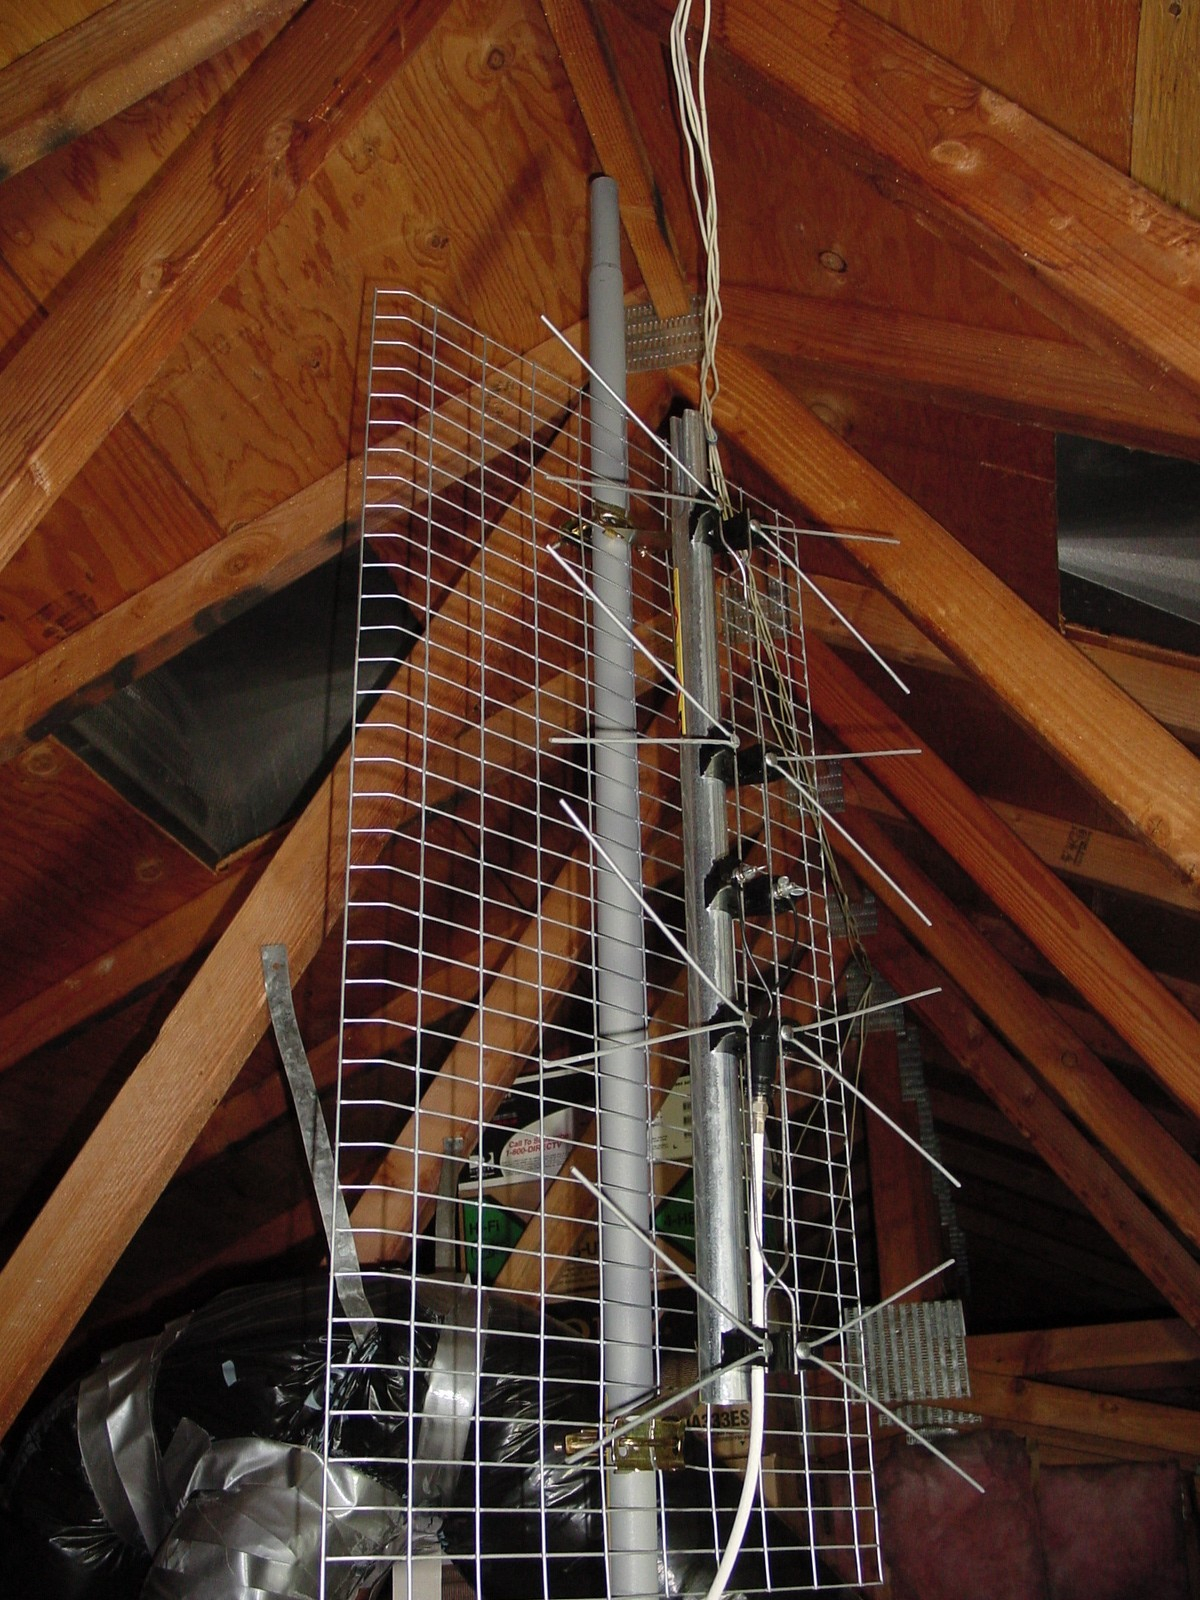 Best Ota Antenna For Attic Attic Ideas